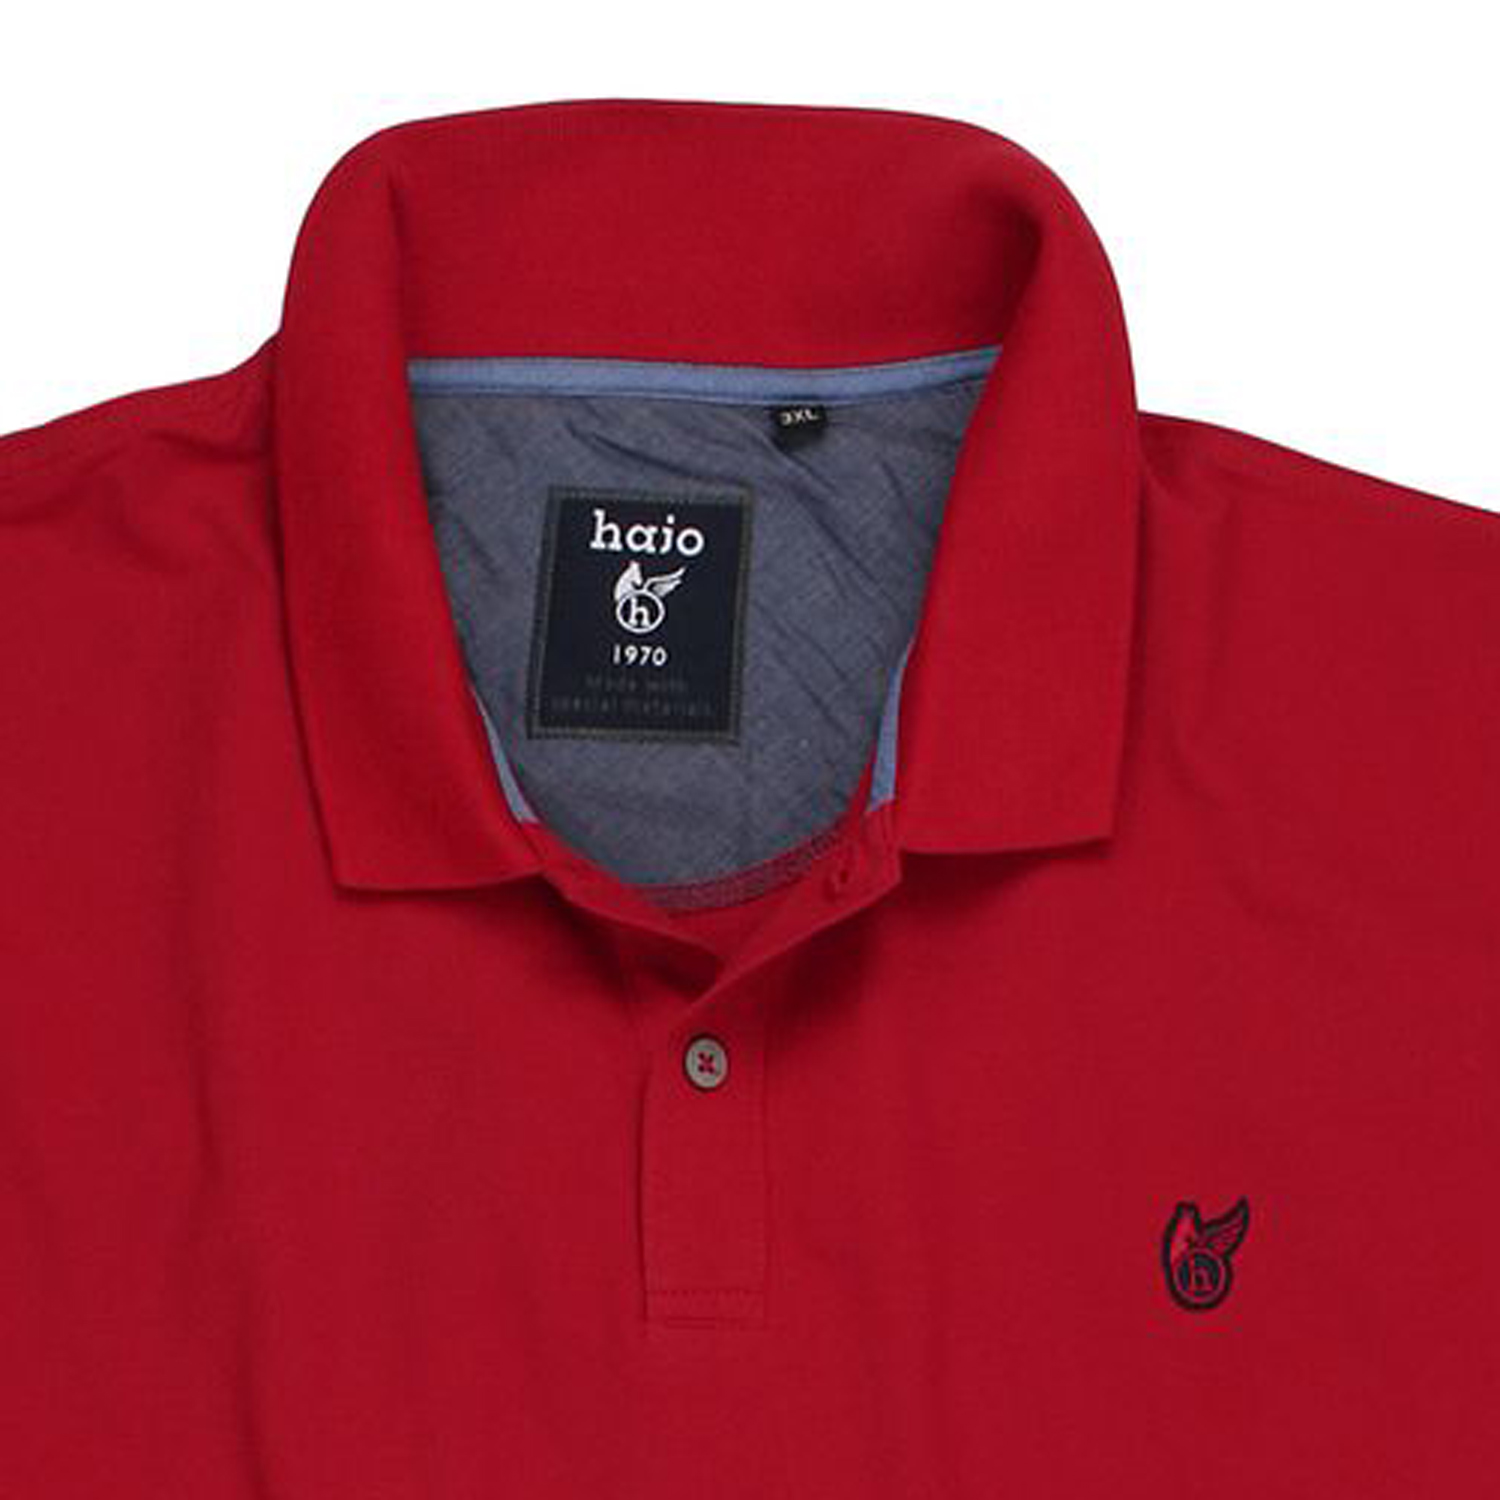 """Detail Image to Polo shirt """"stay fresh"""" by hajo in red up to oversize 6XL"""